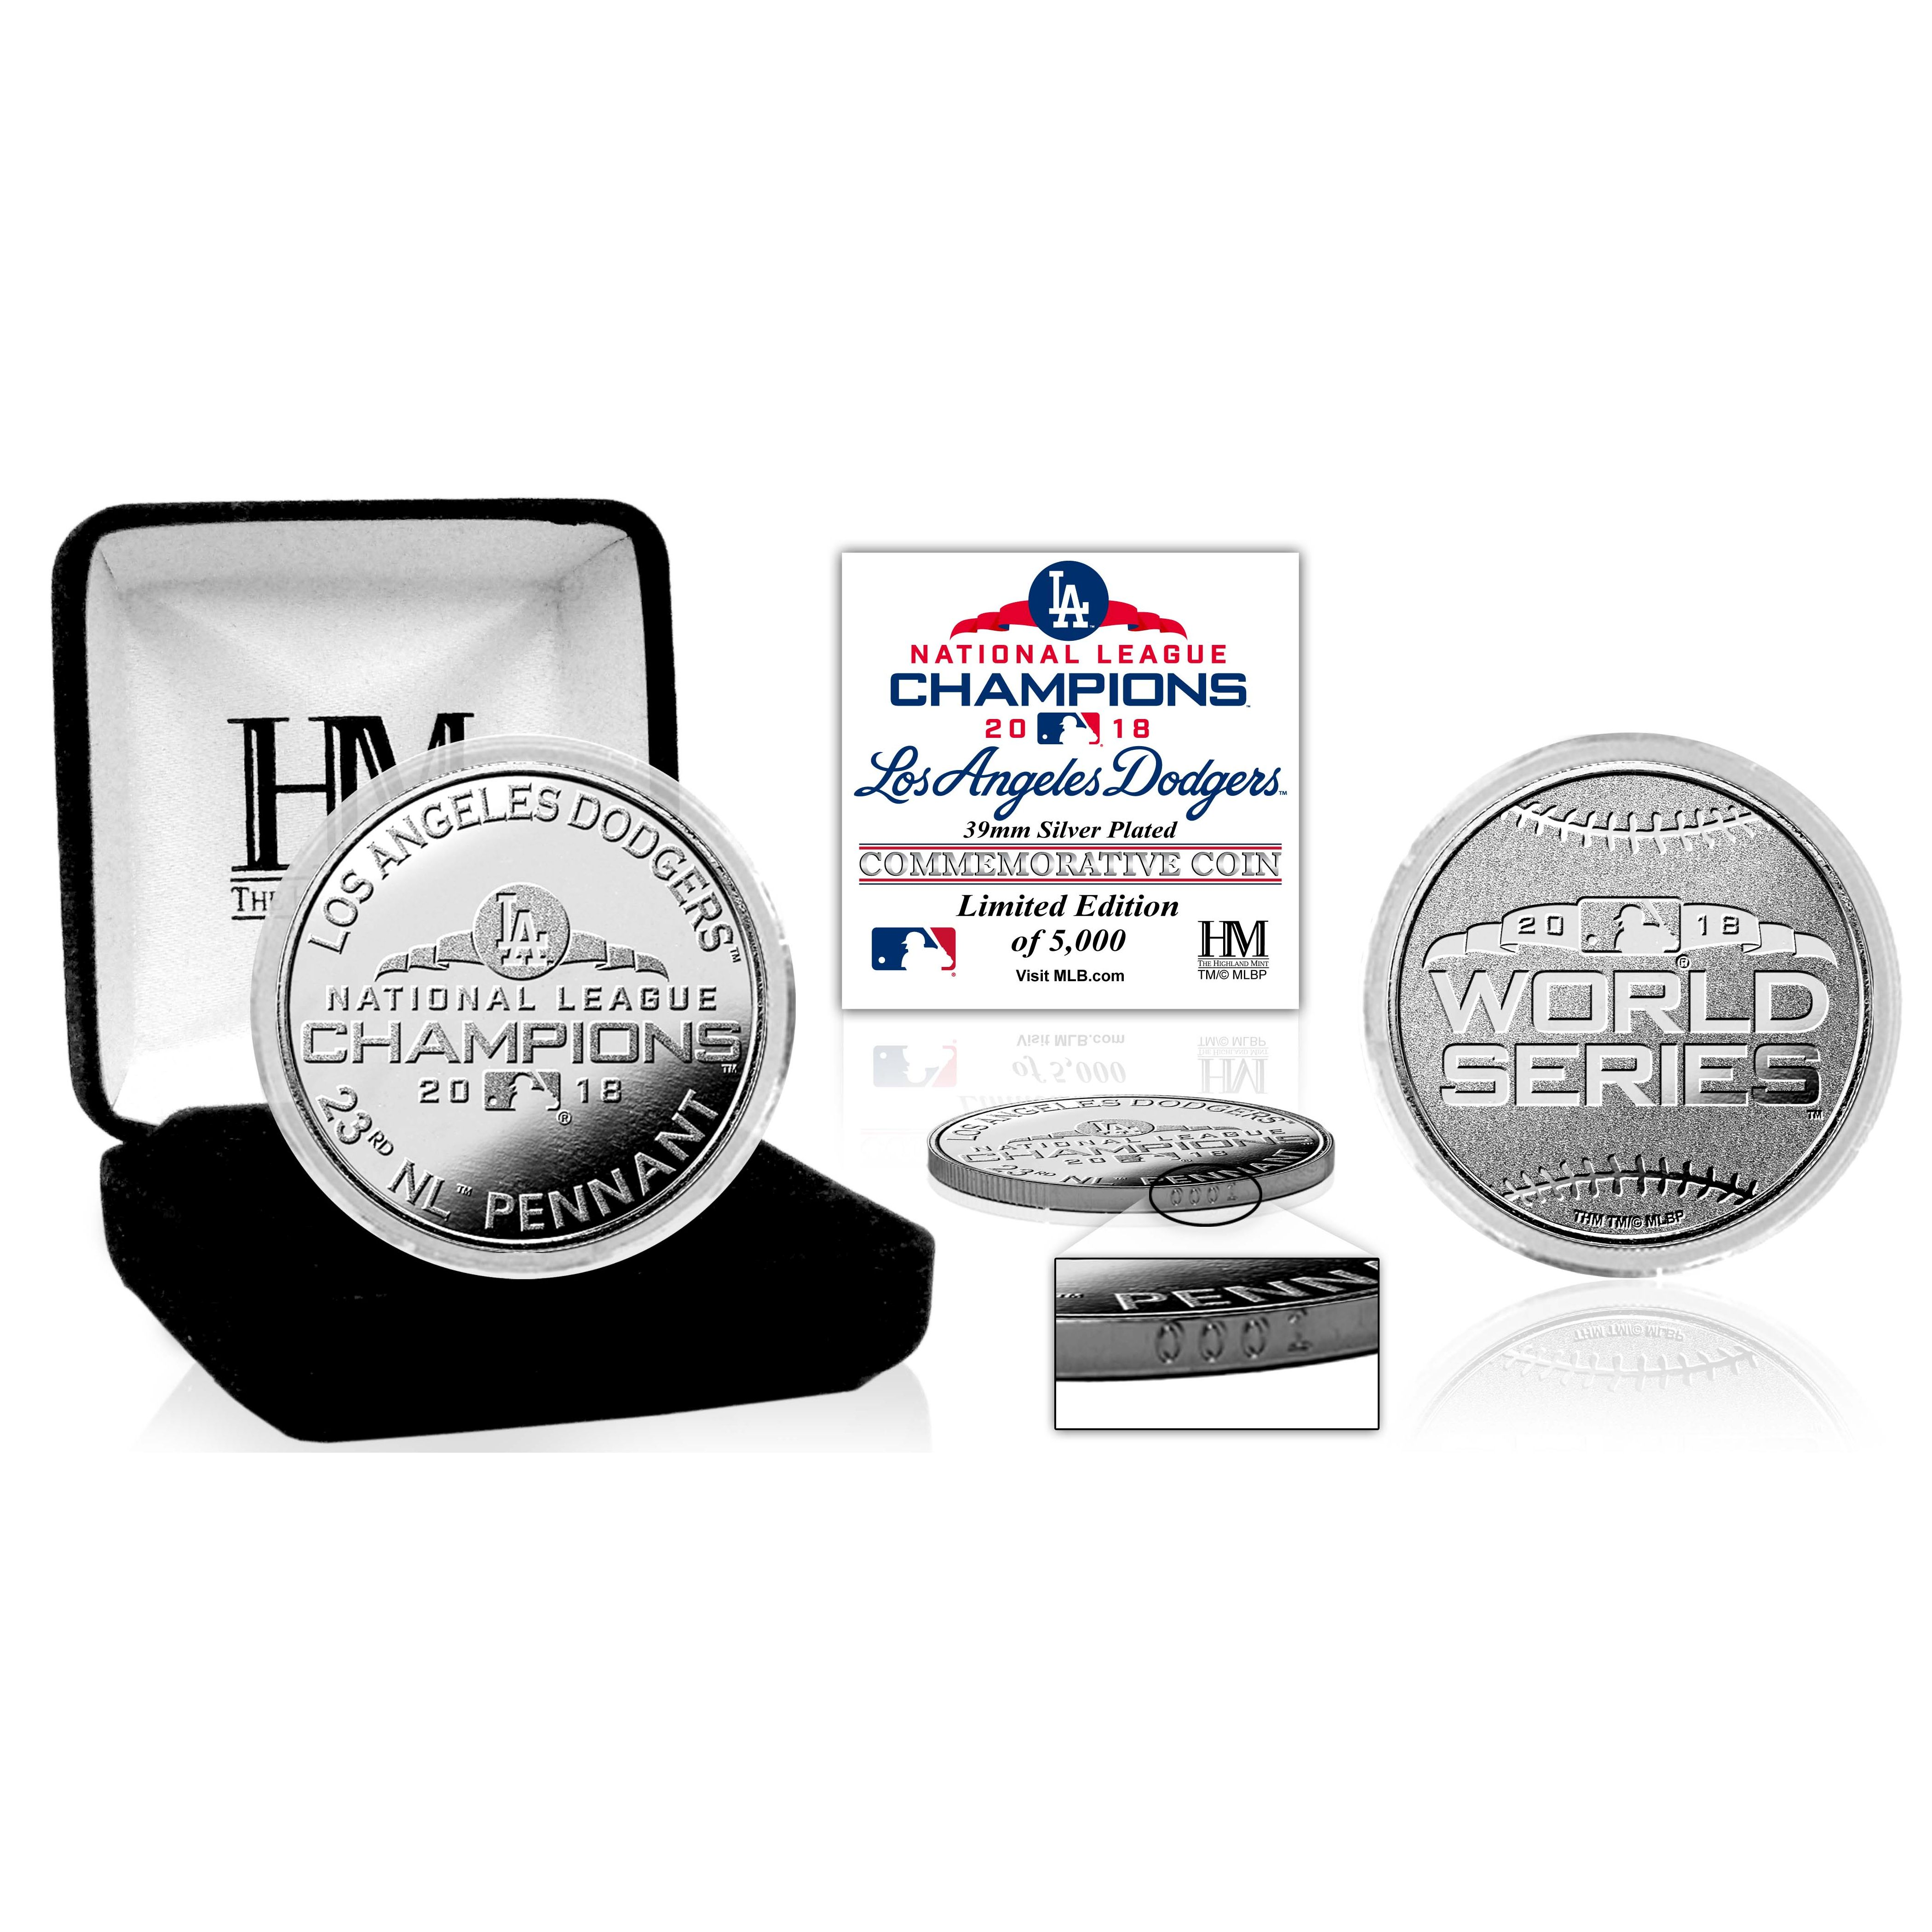 Los Angeles Dodgers 2018 NL Champions Silver Mint Coin